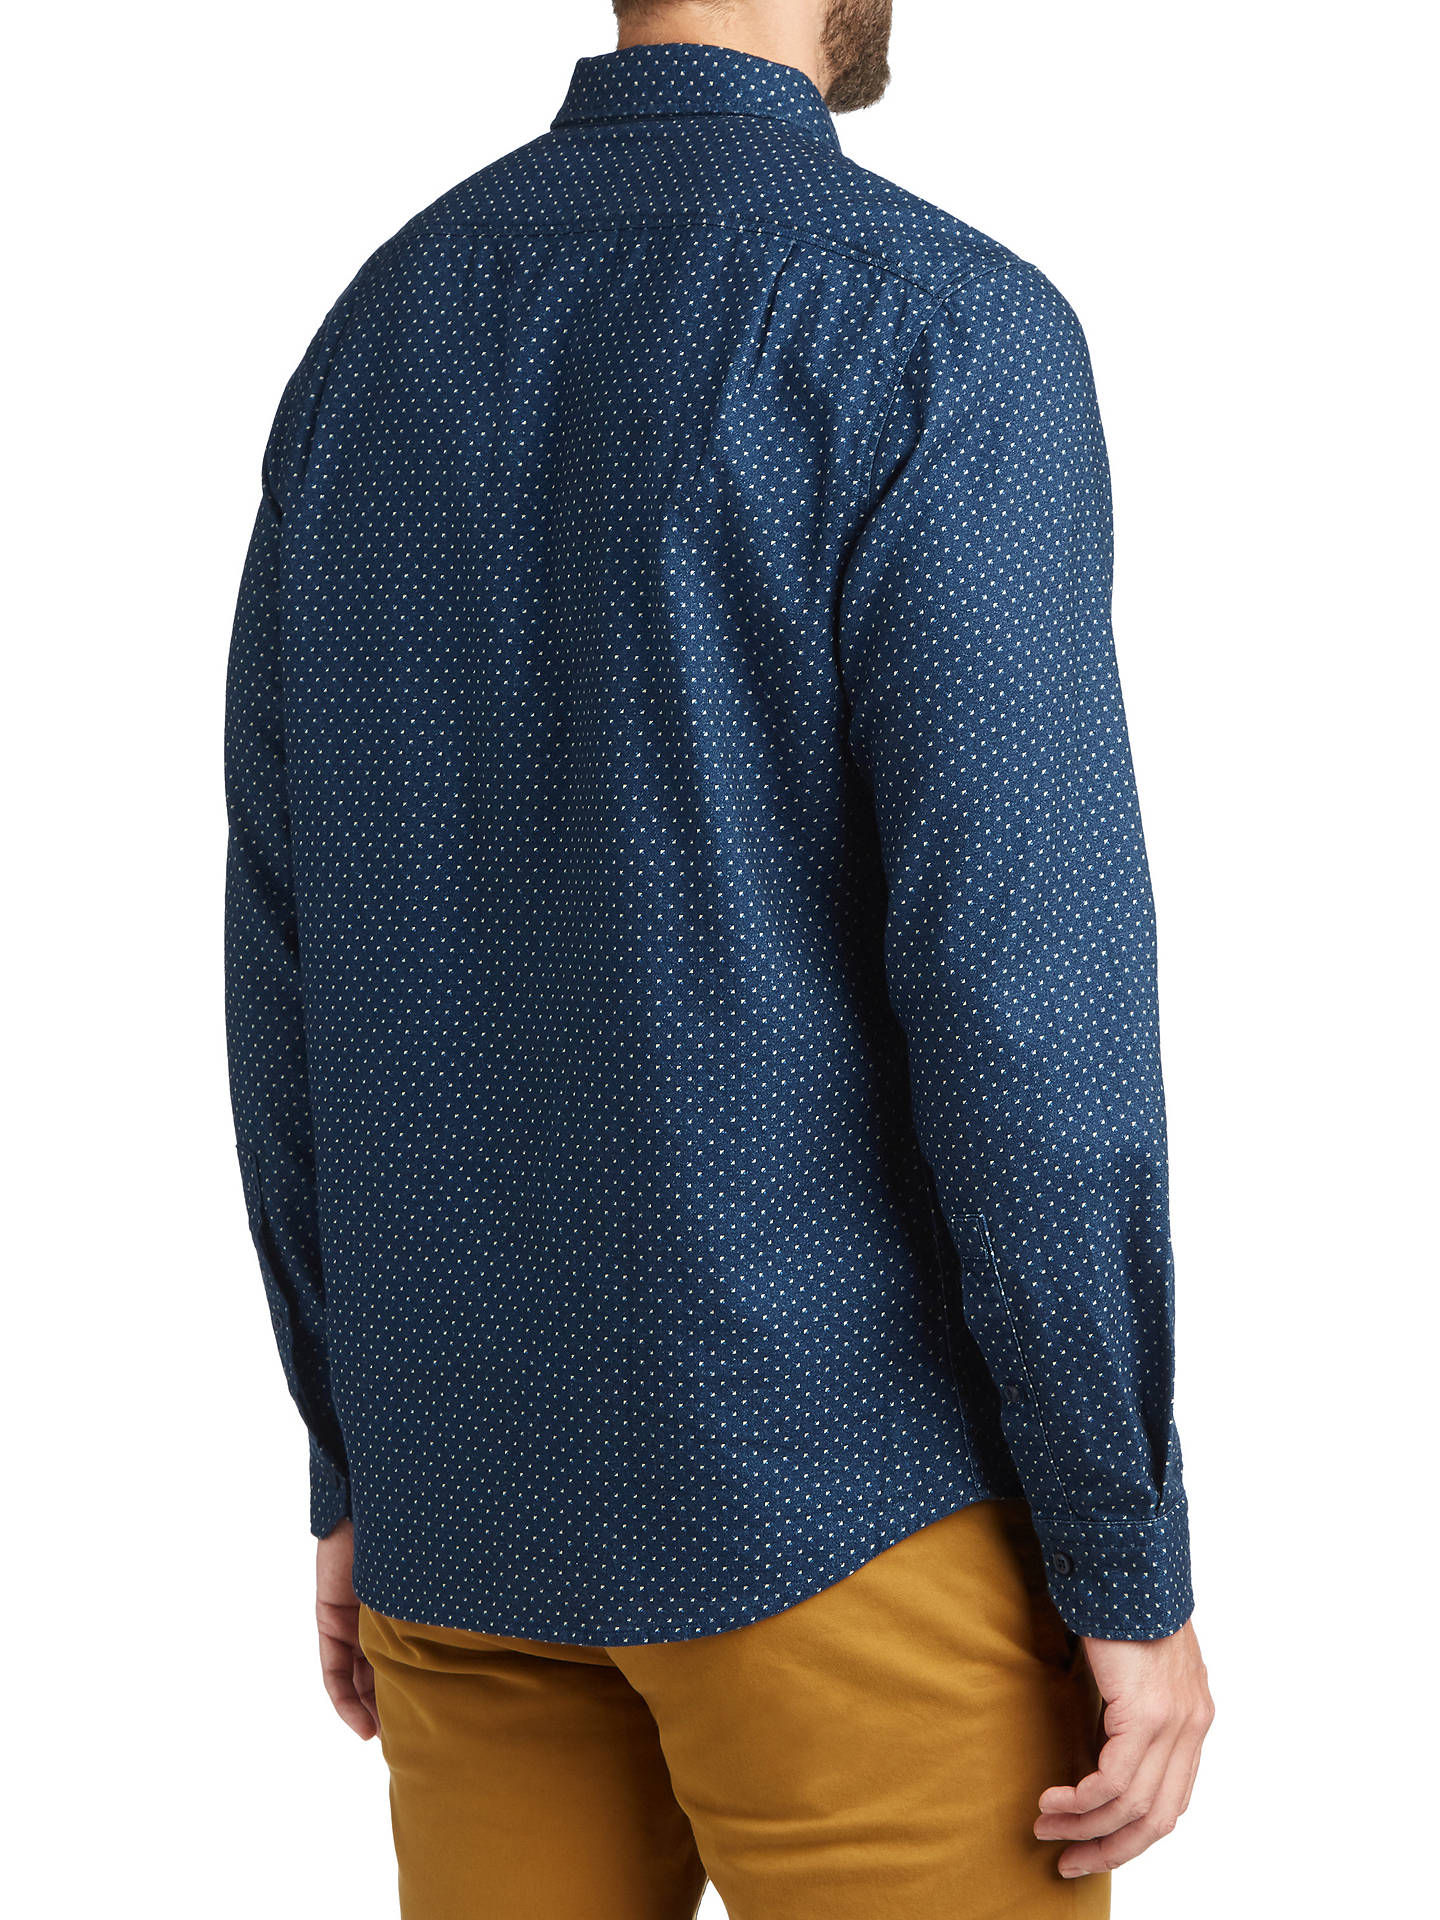 BuyBOSS Reggie Long Sleeve Shirt, Dark Blue, M Online at johnlewis.com